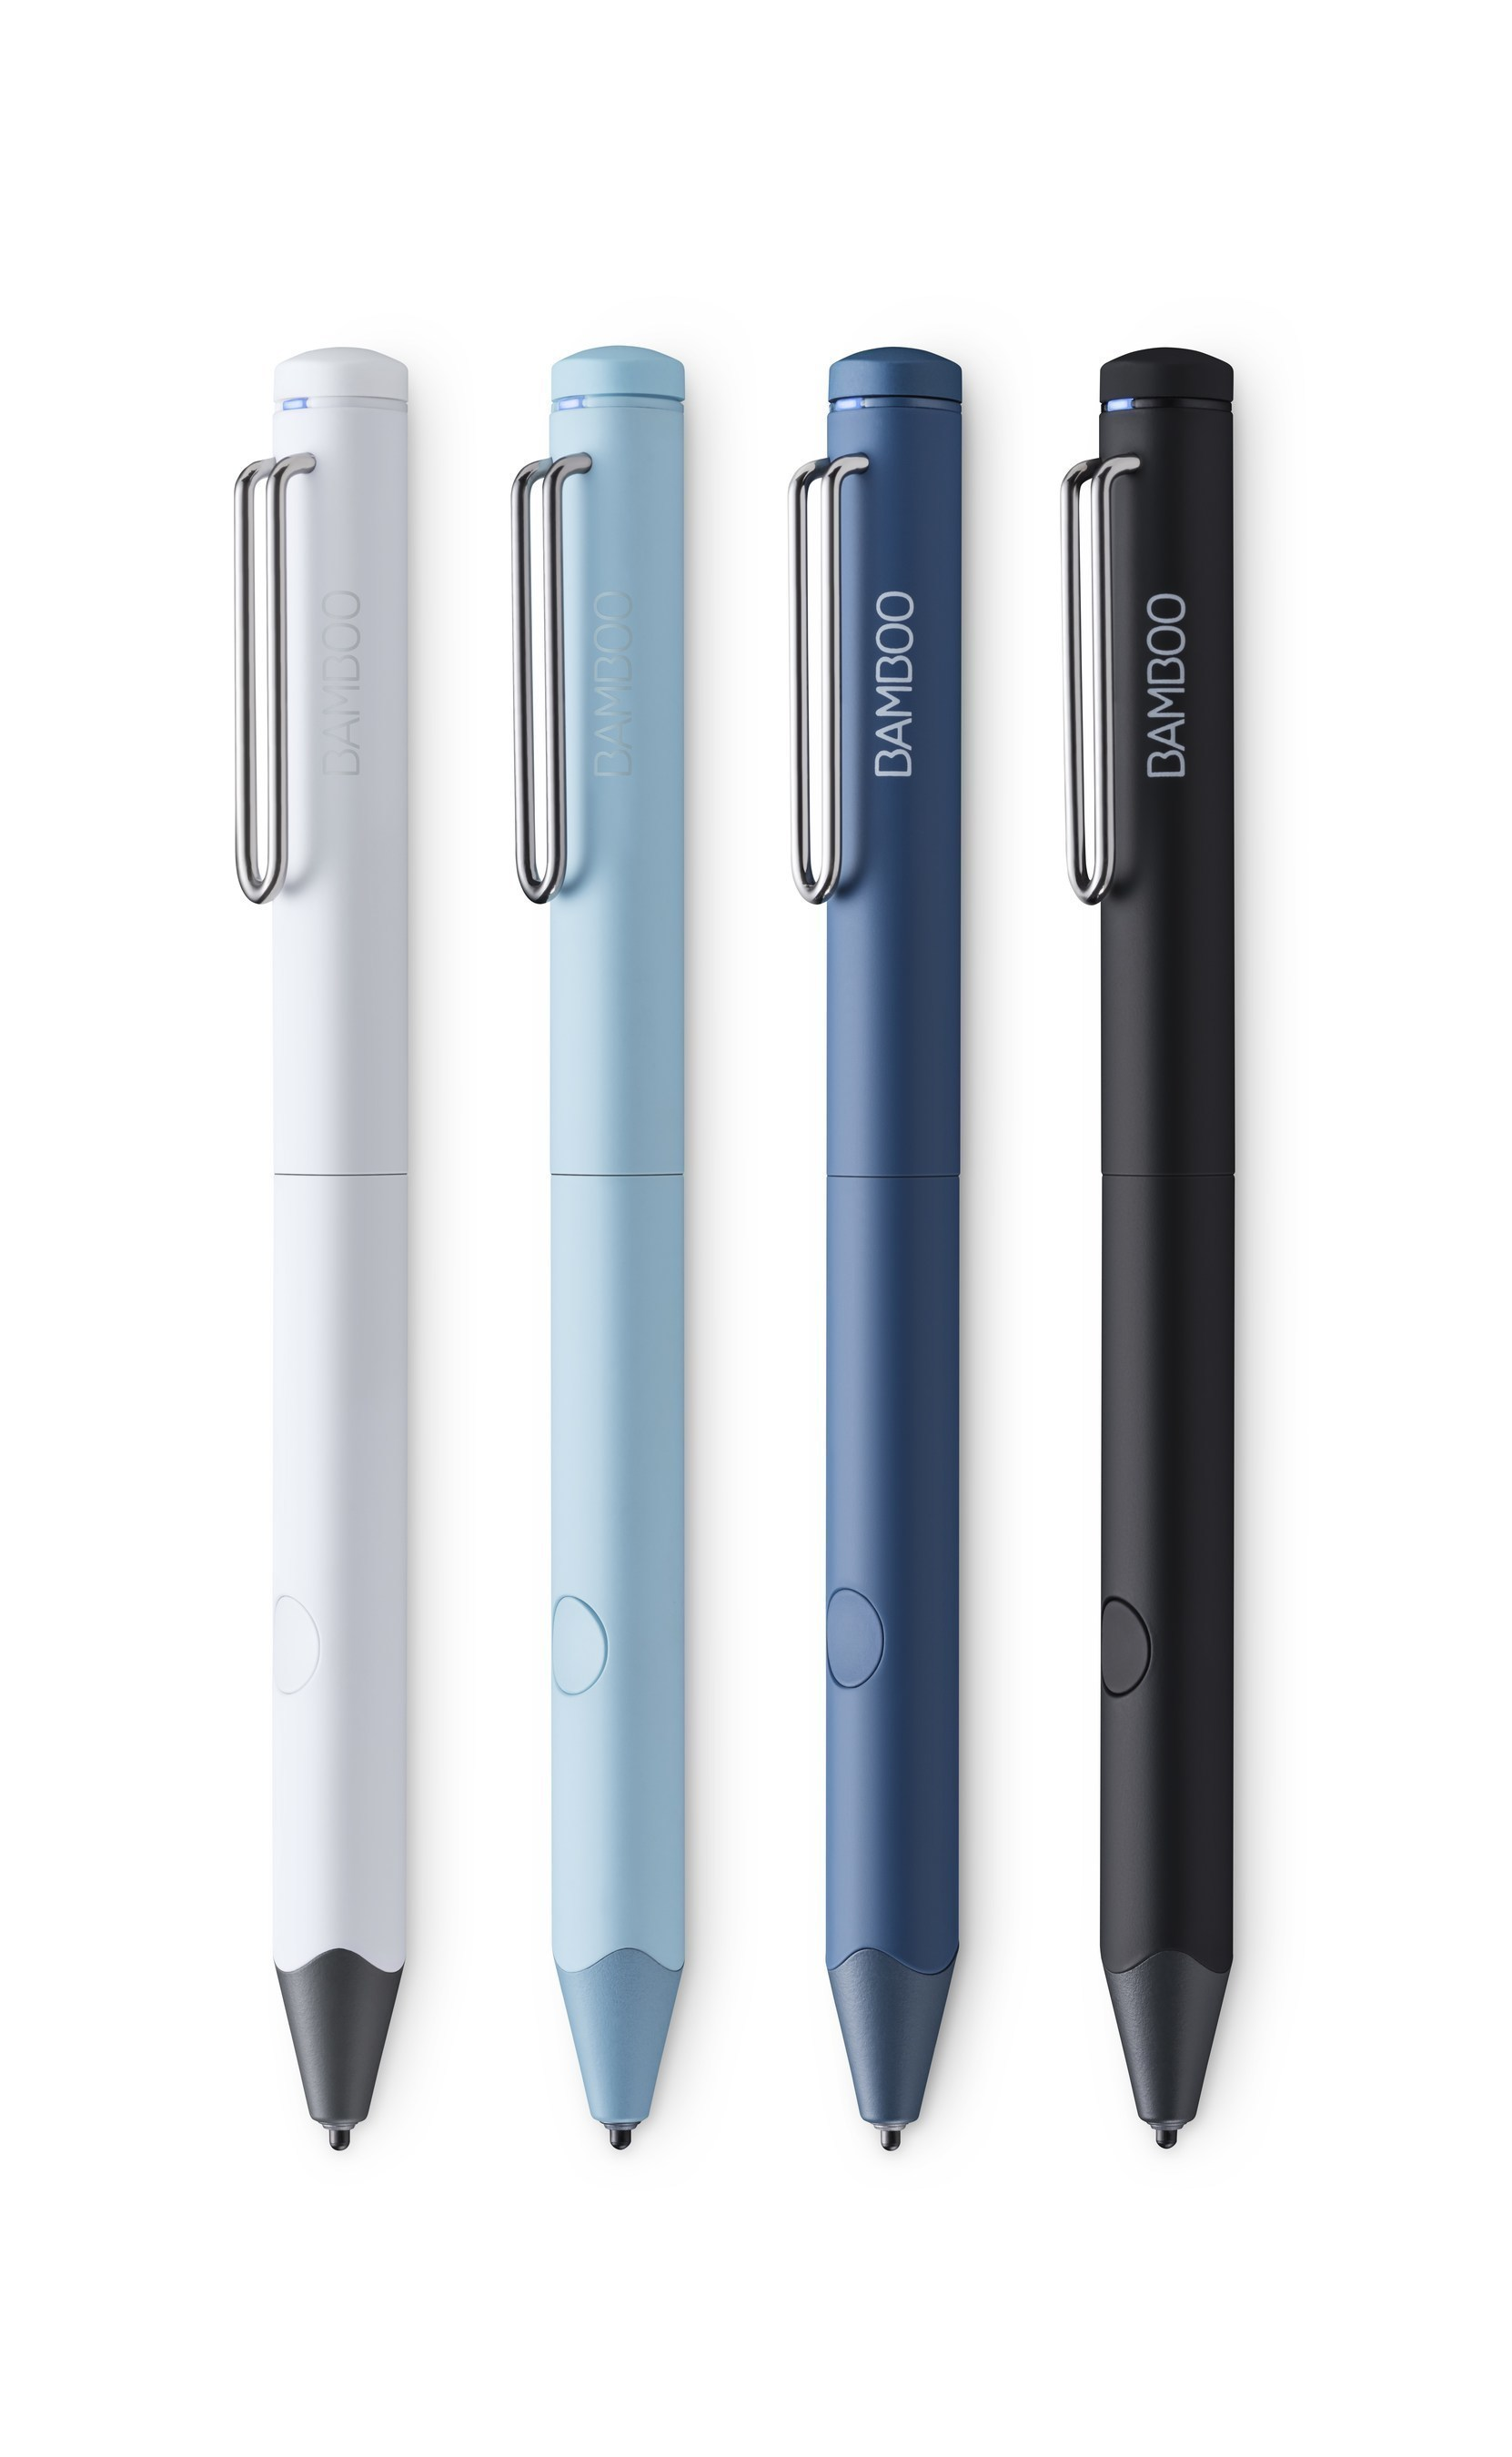 Bamboo Fineline is the stylus built for precision and the iPad.